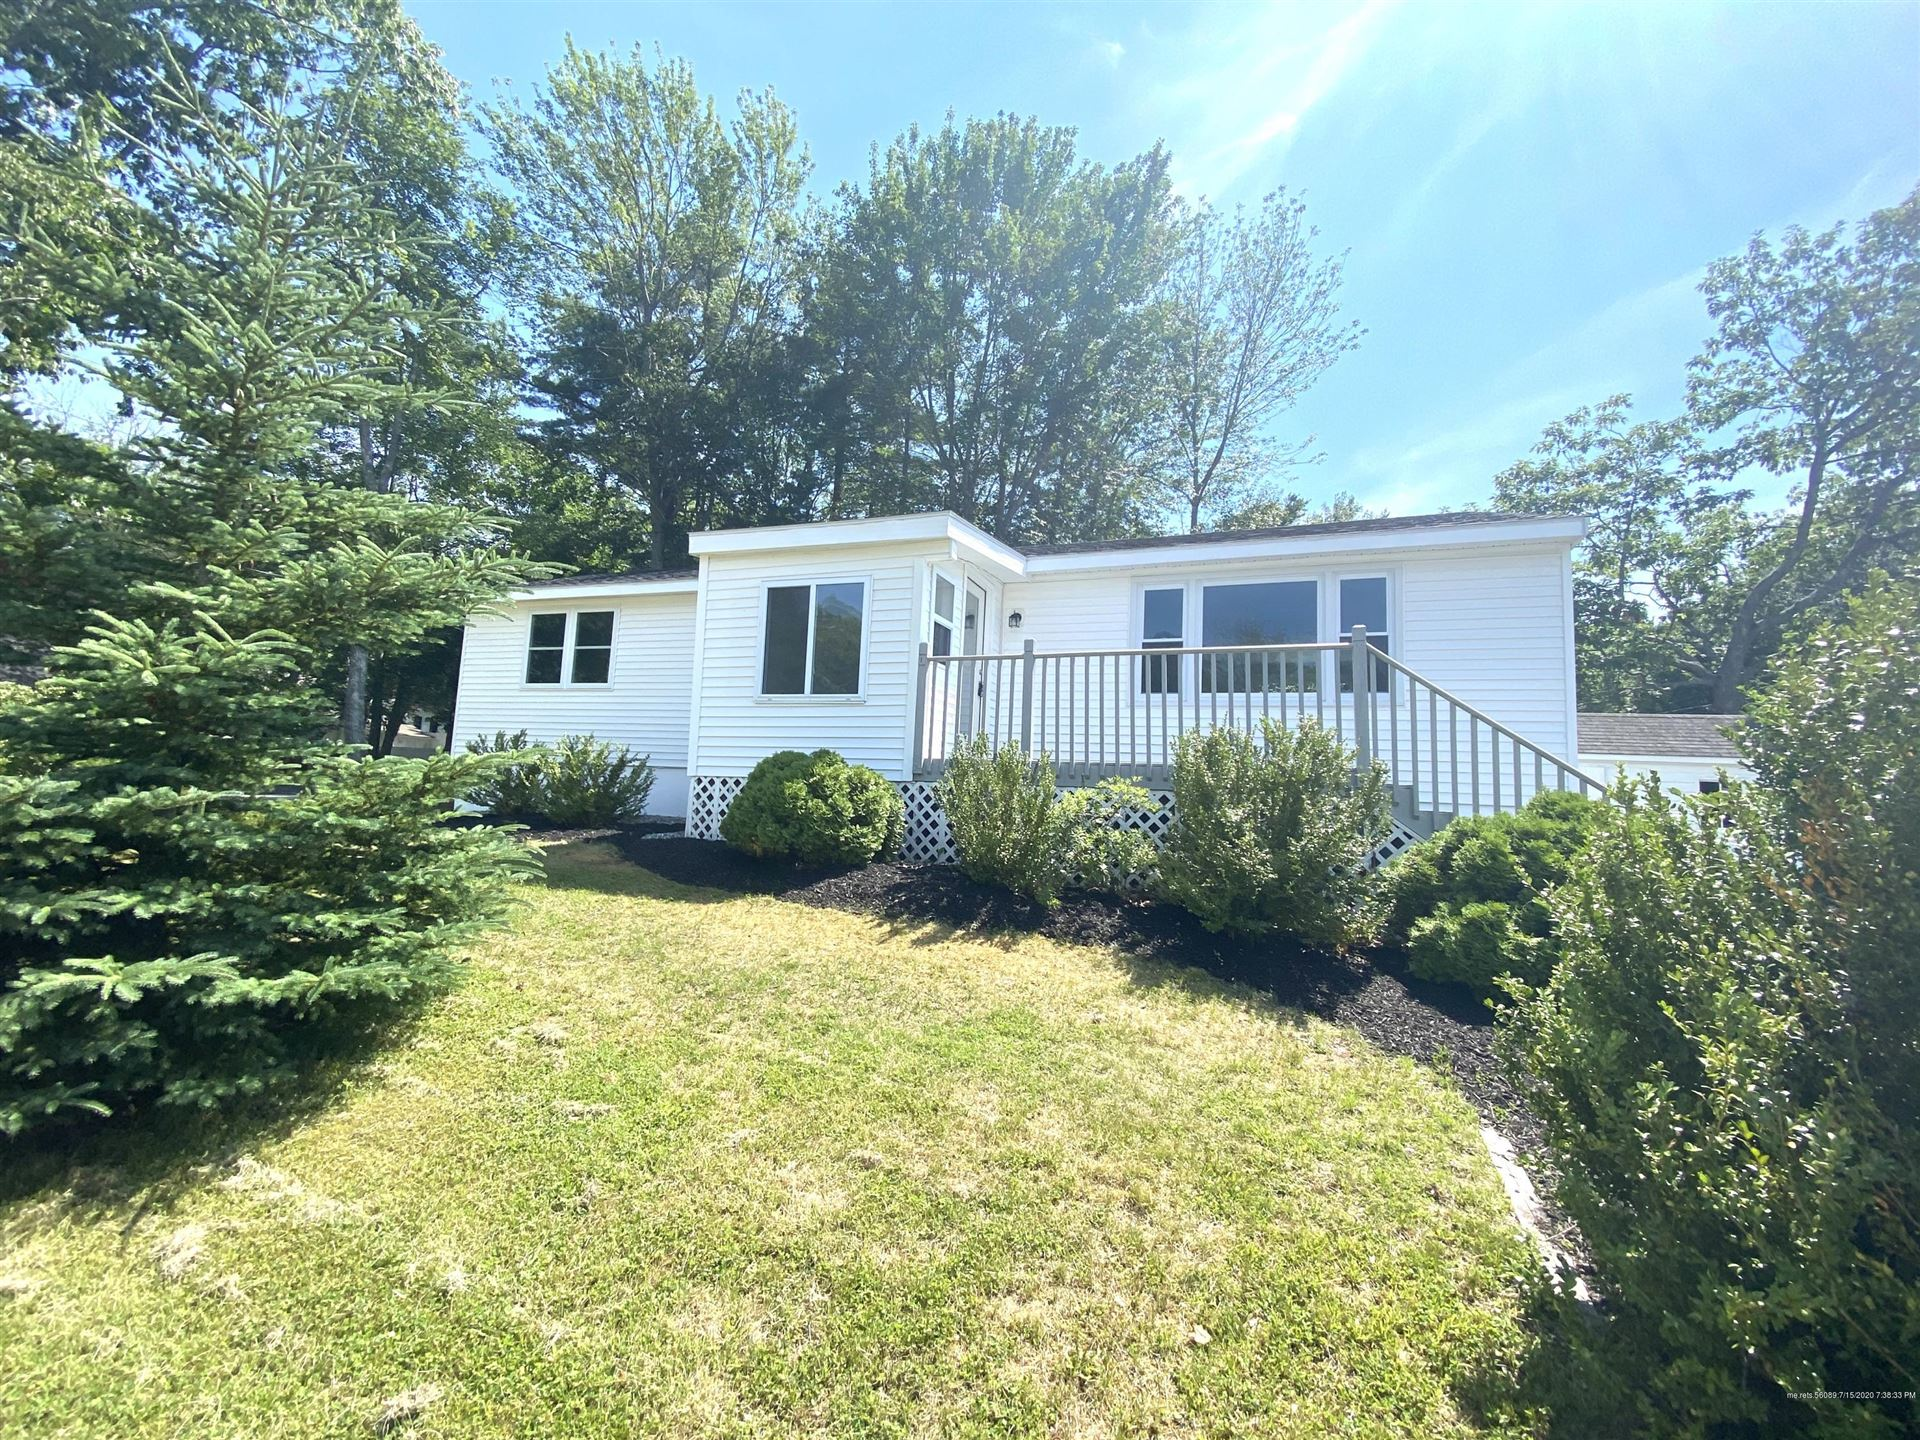 Photo of 5 Shorewood Drive, Old Orchard Beach, ME 04064 (MLS # 1459407)